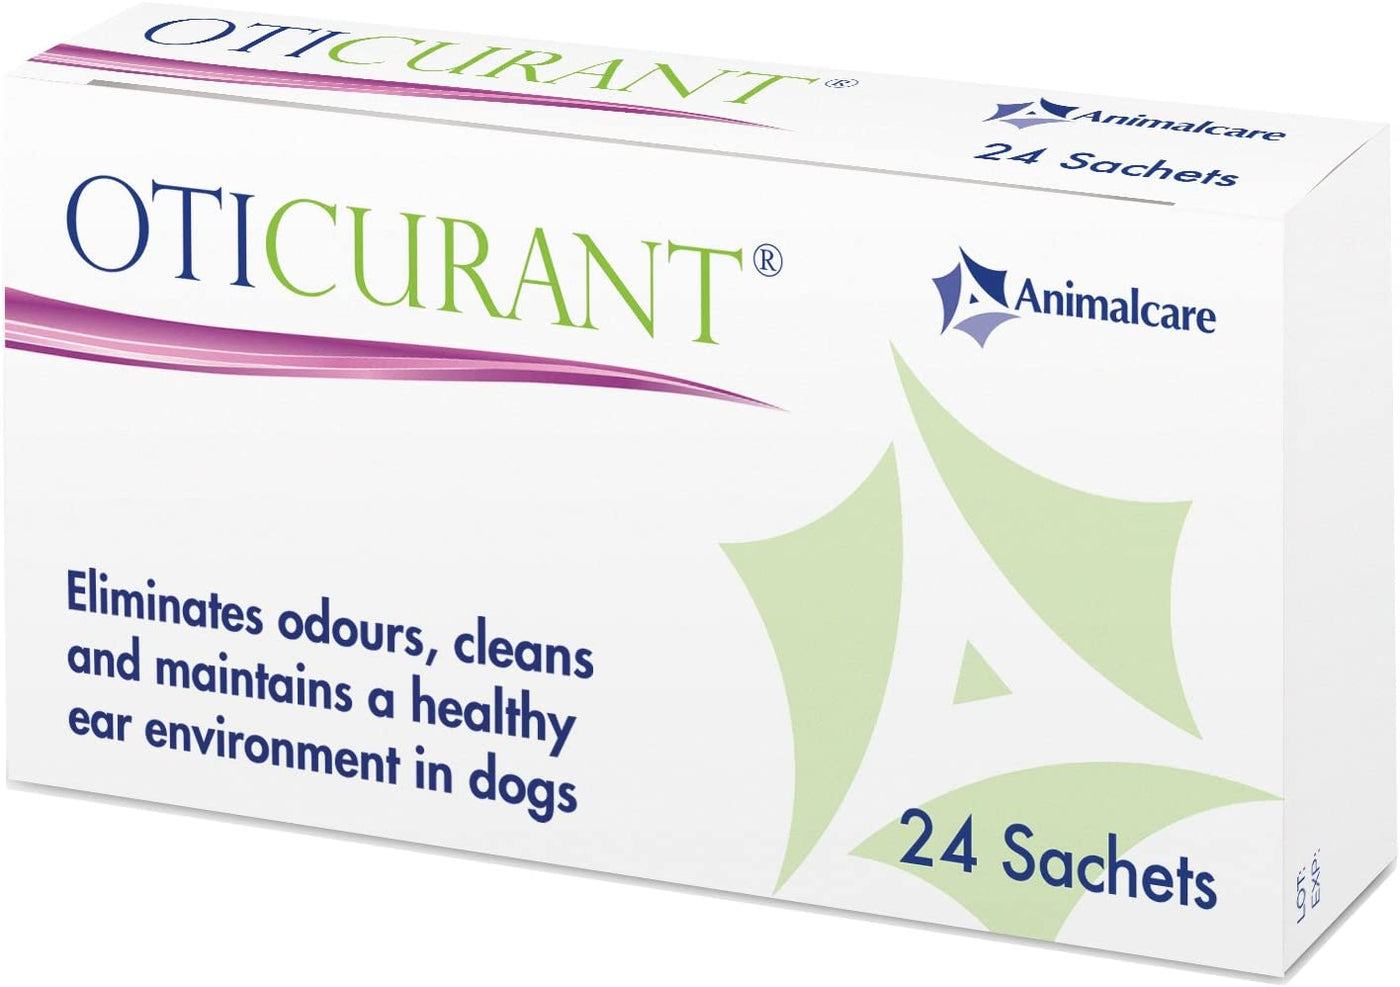 Dog Ear Powder and Cleaner - Oticurant 24 Sachets, Prevents Ear Fungi and Bacteria Growth For Pets